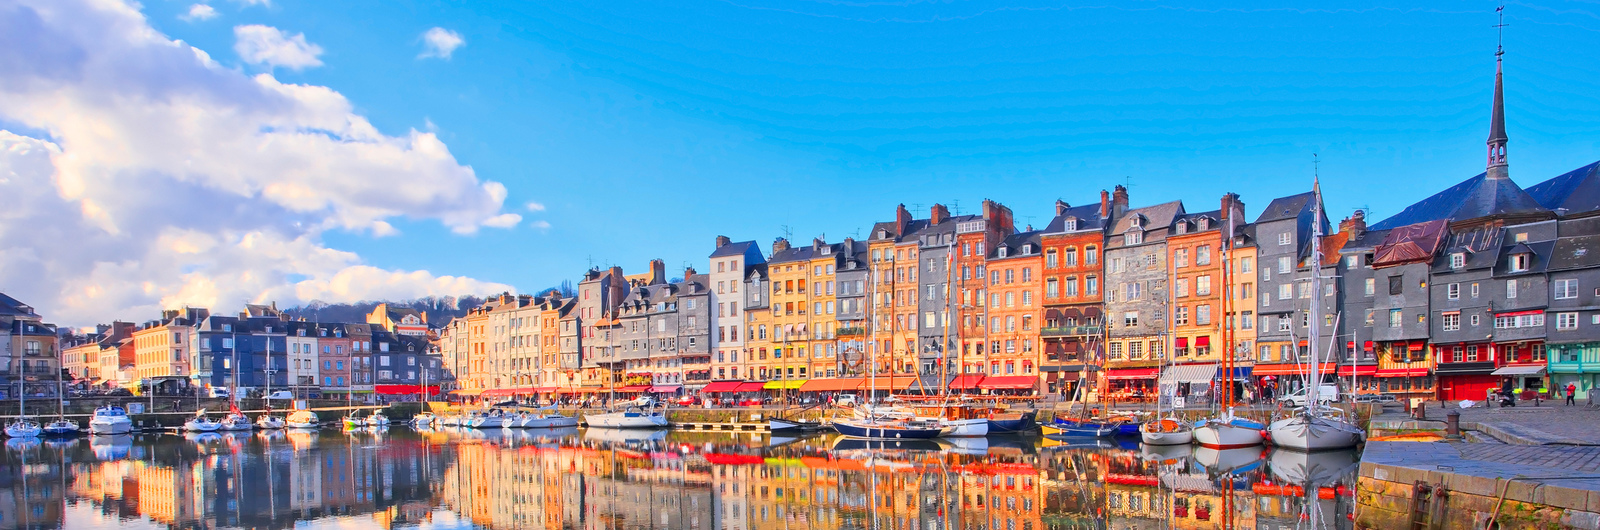 honfleur city header